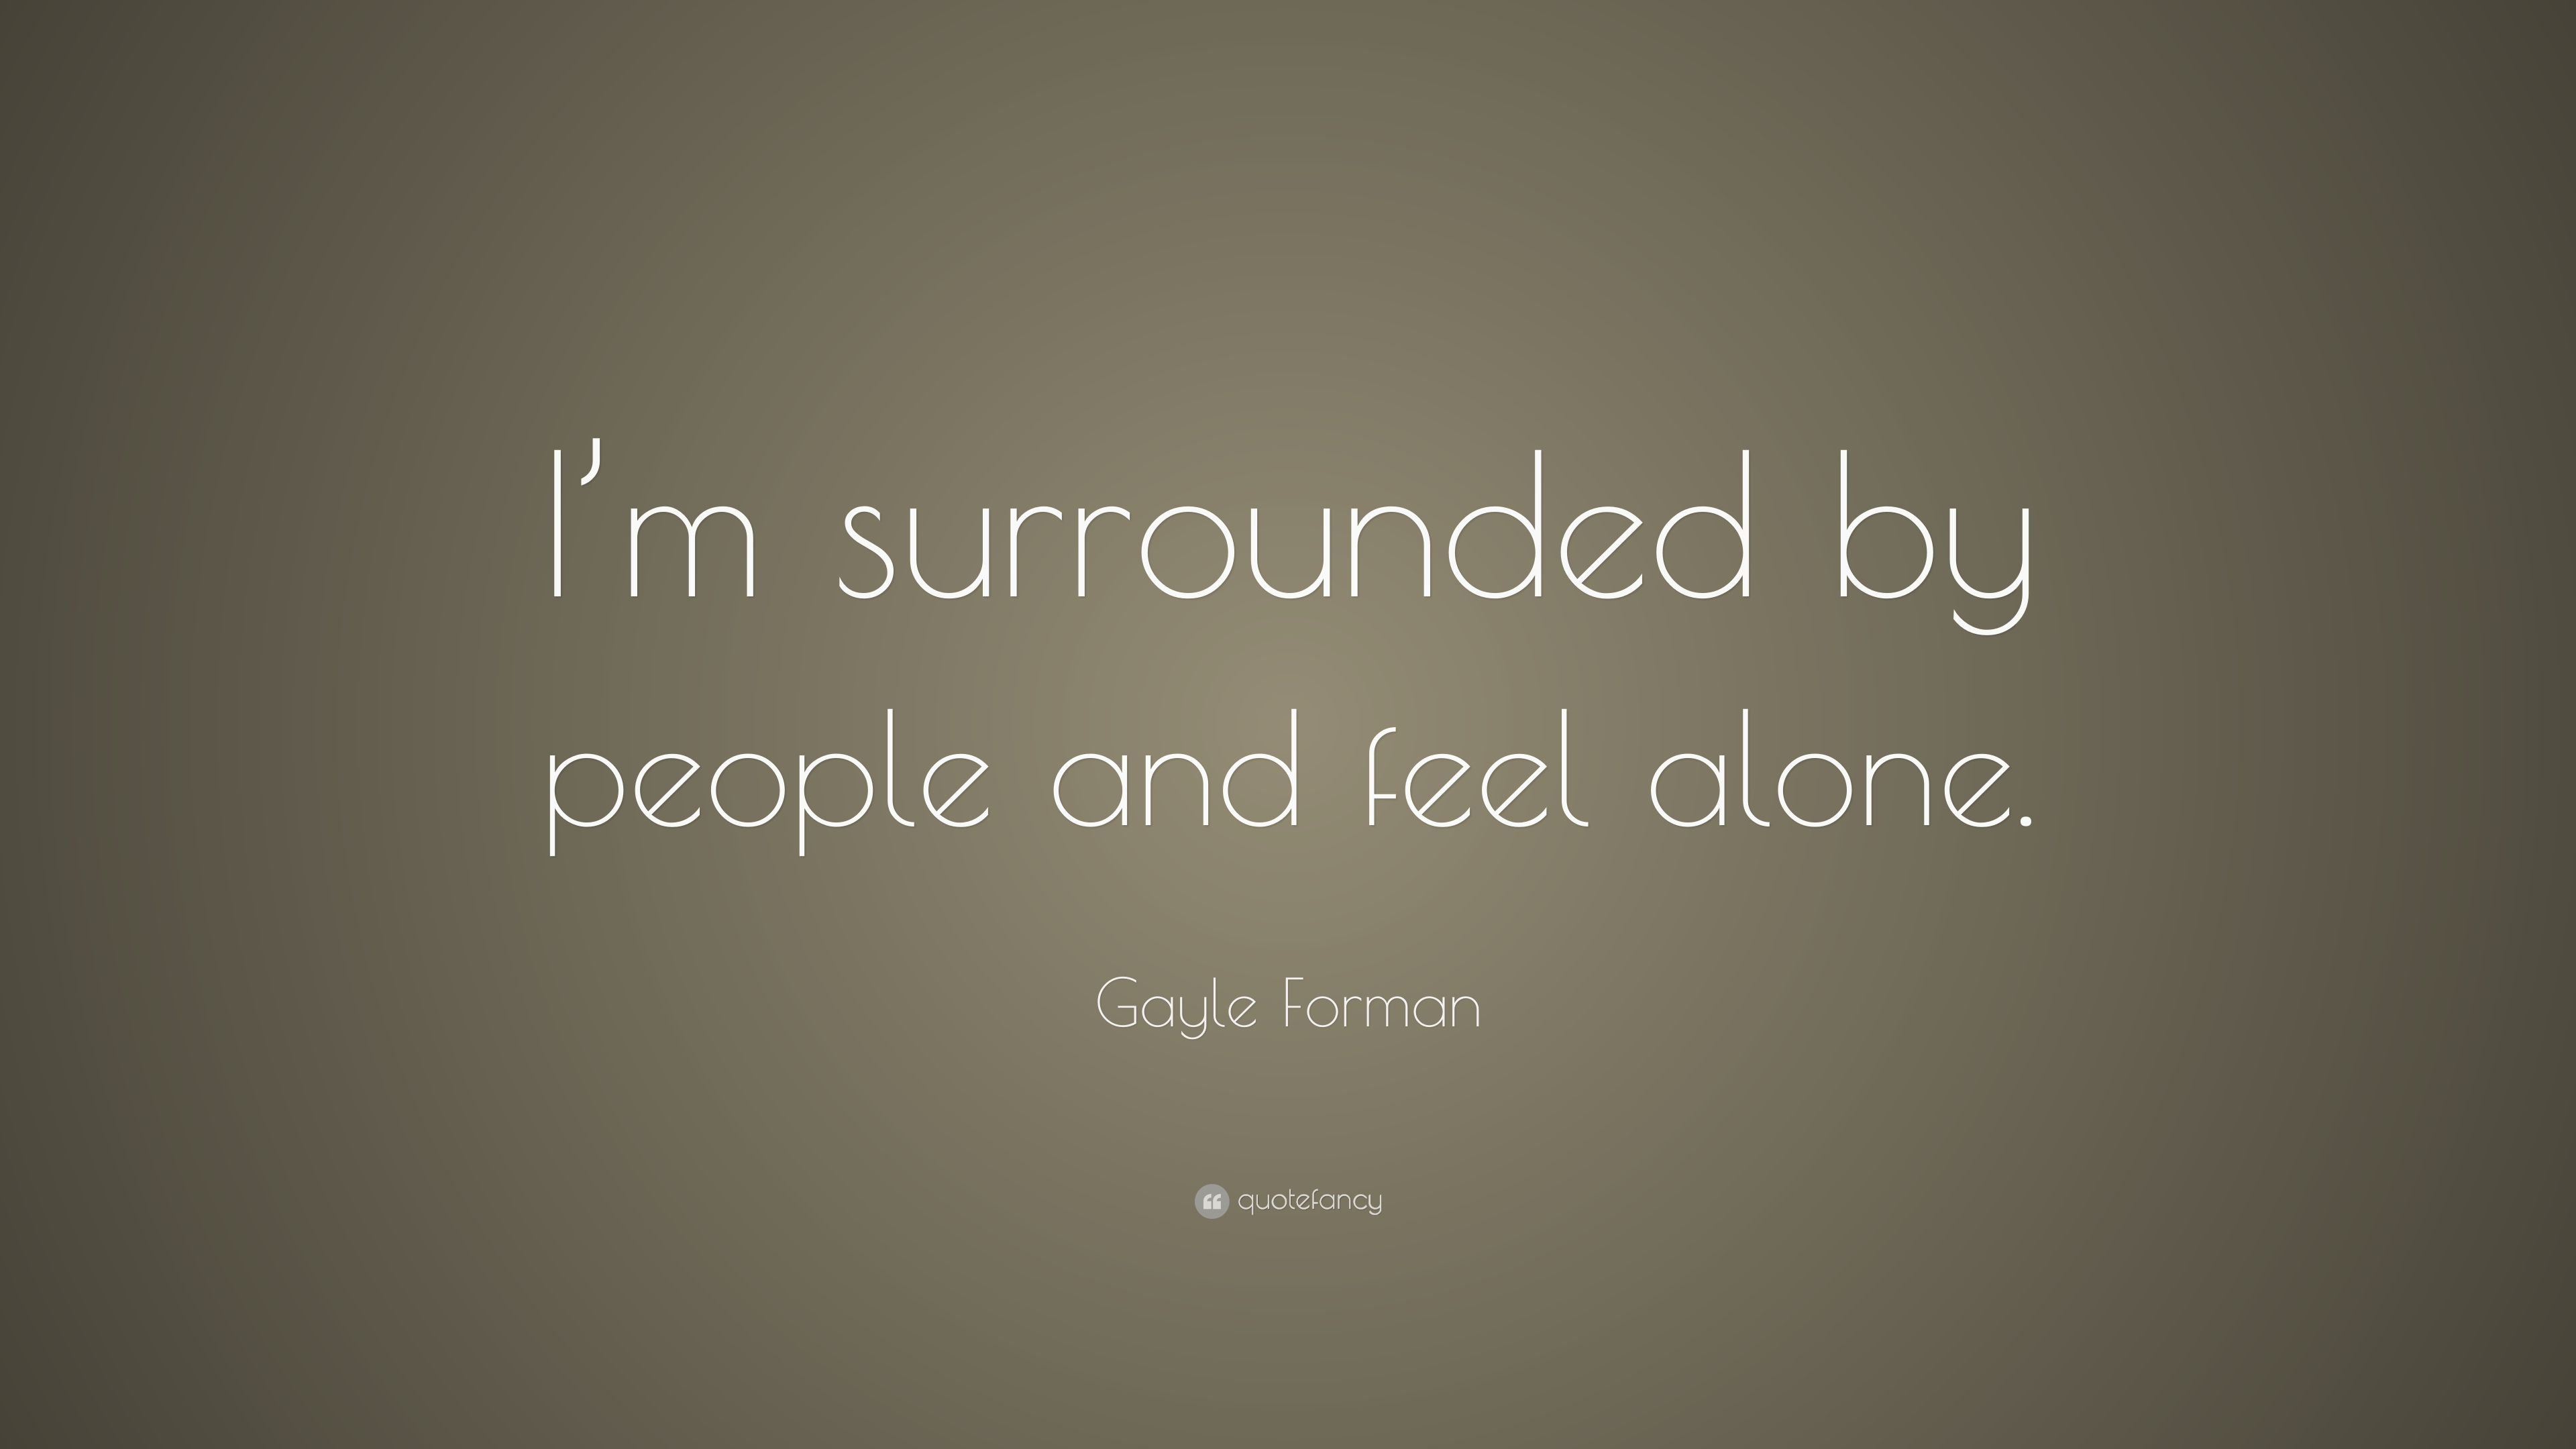 Surrounded By Love Quotes: Gayle Forman Quotes (100 Wallpapers)